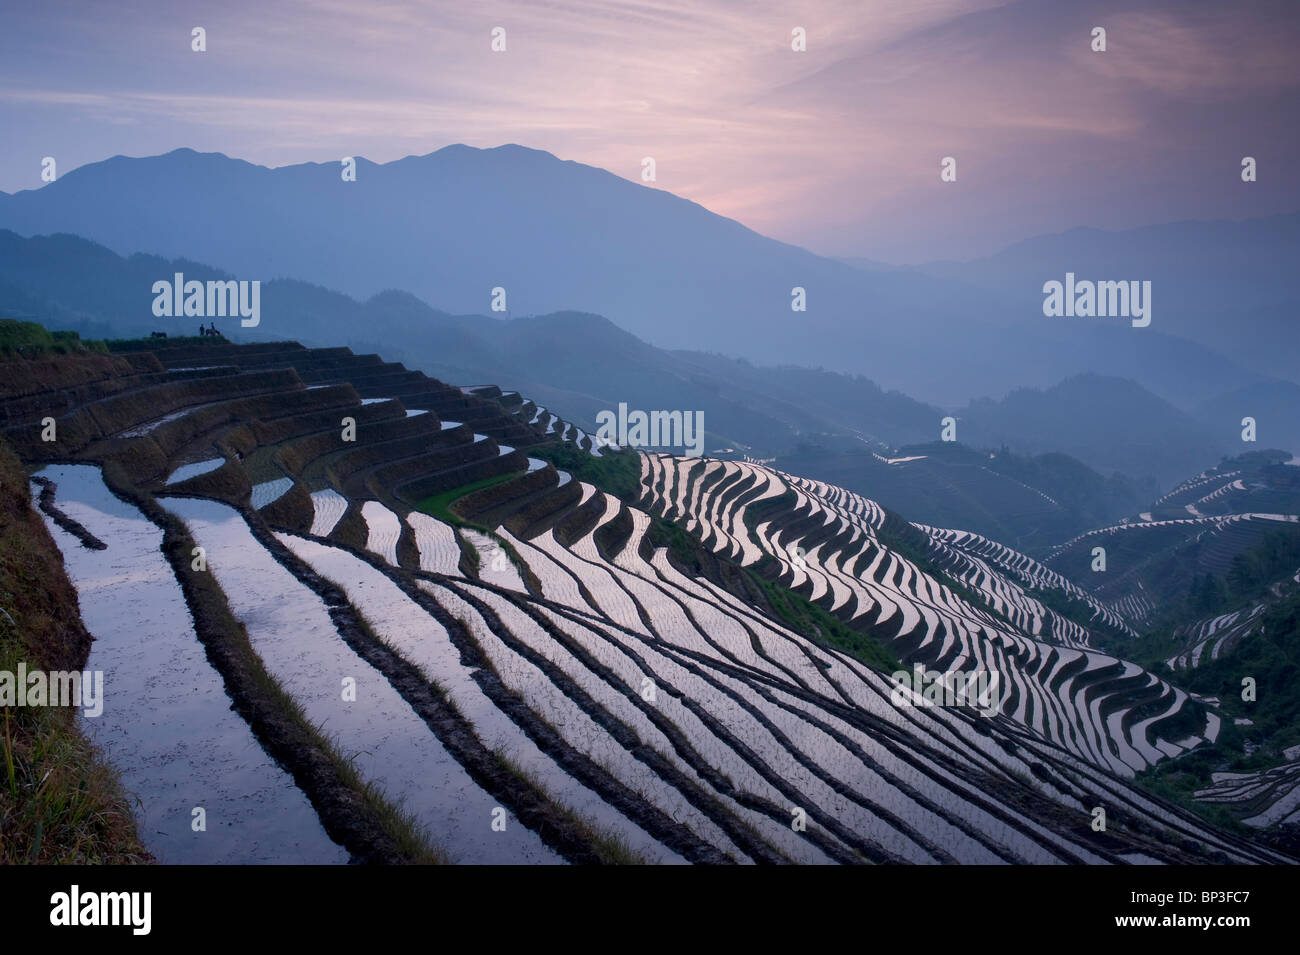 sunset at Dragon's Backbone Rice Terraces near Yao Village of Dazhai, Guangxi Province China, Stock Photo